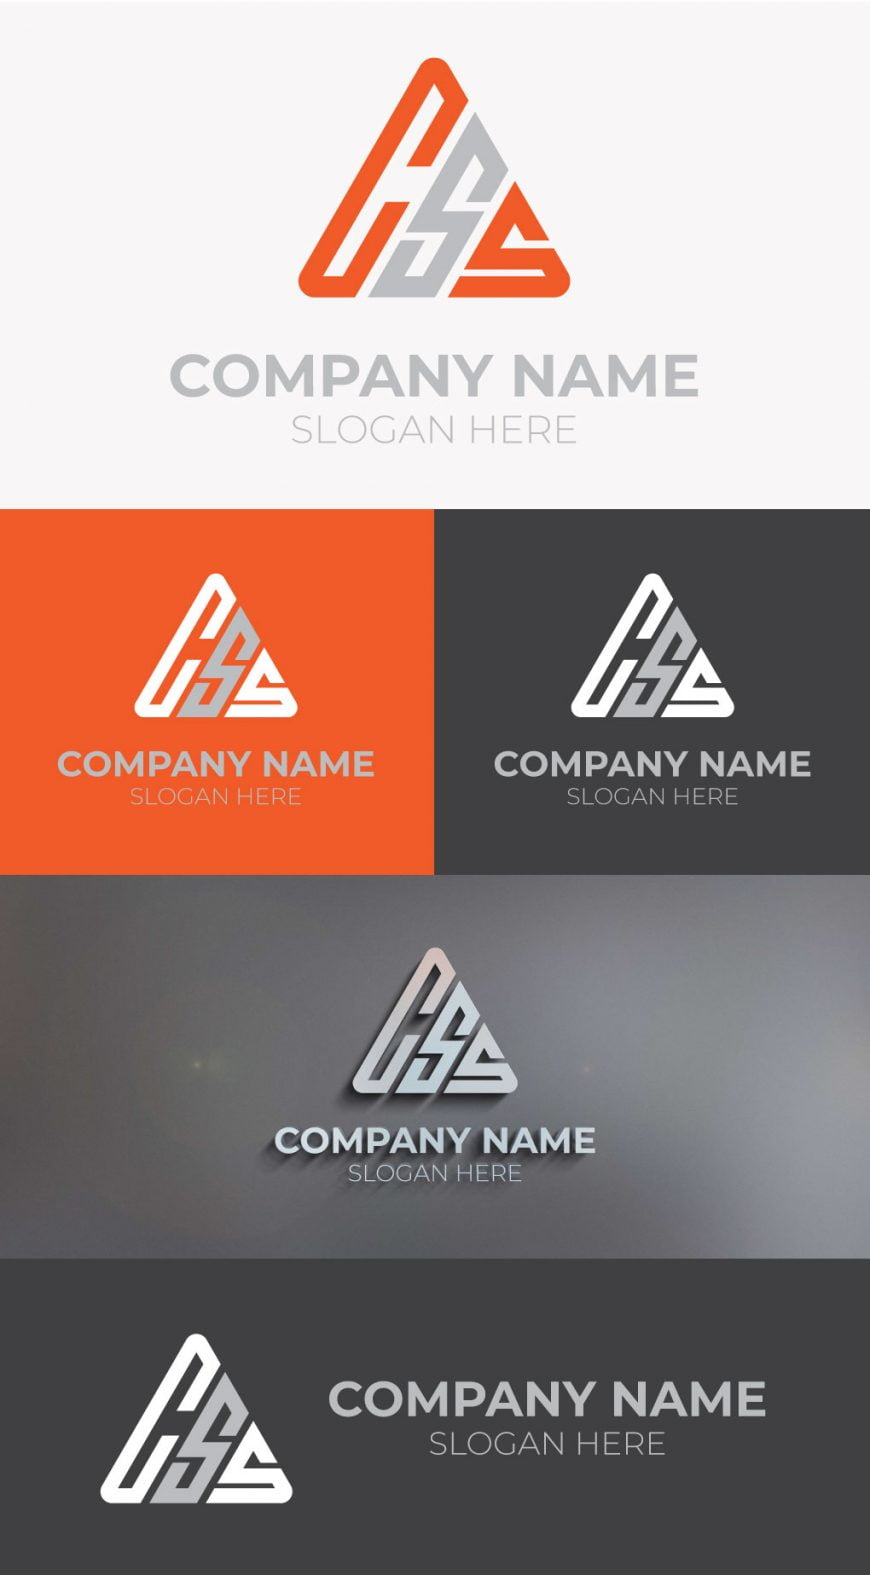 CSS-LOGO-FREE-TEMPLATE